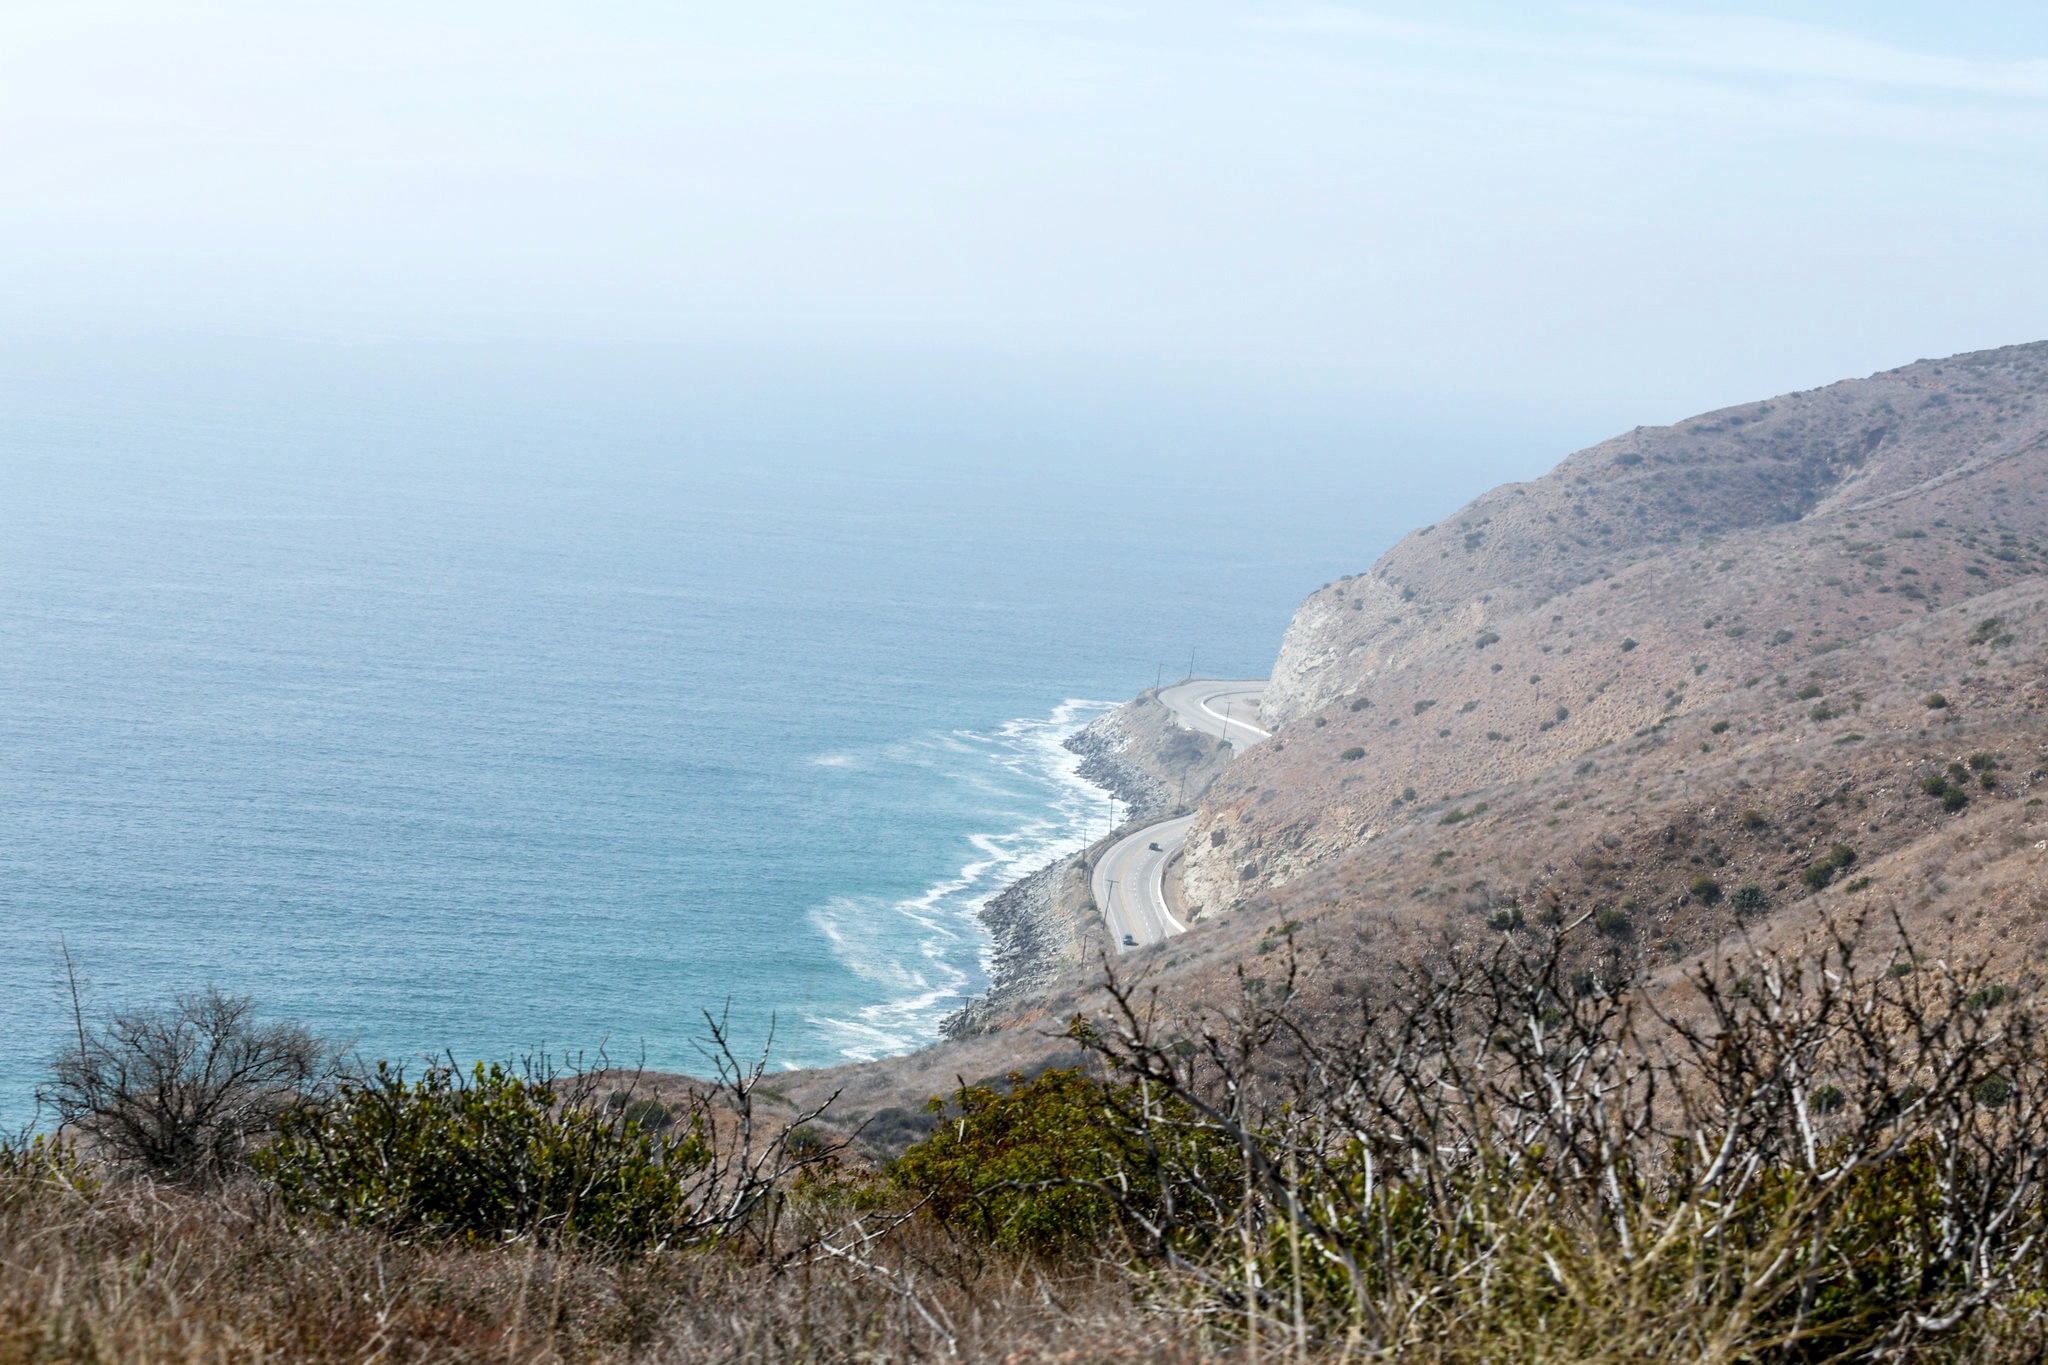 #1 - Malibu, California - The word is out on the best-kept secret in cycling destinations, with challenging terrain and breathtaking views in all directions, just minutes from Los Angeles.